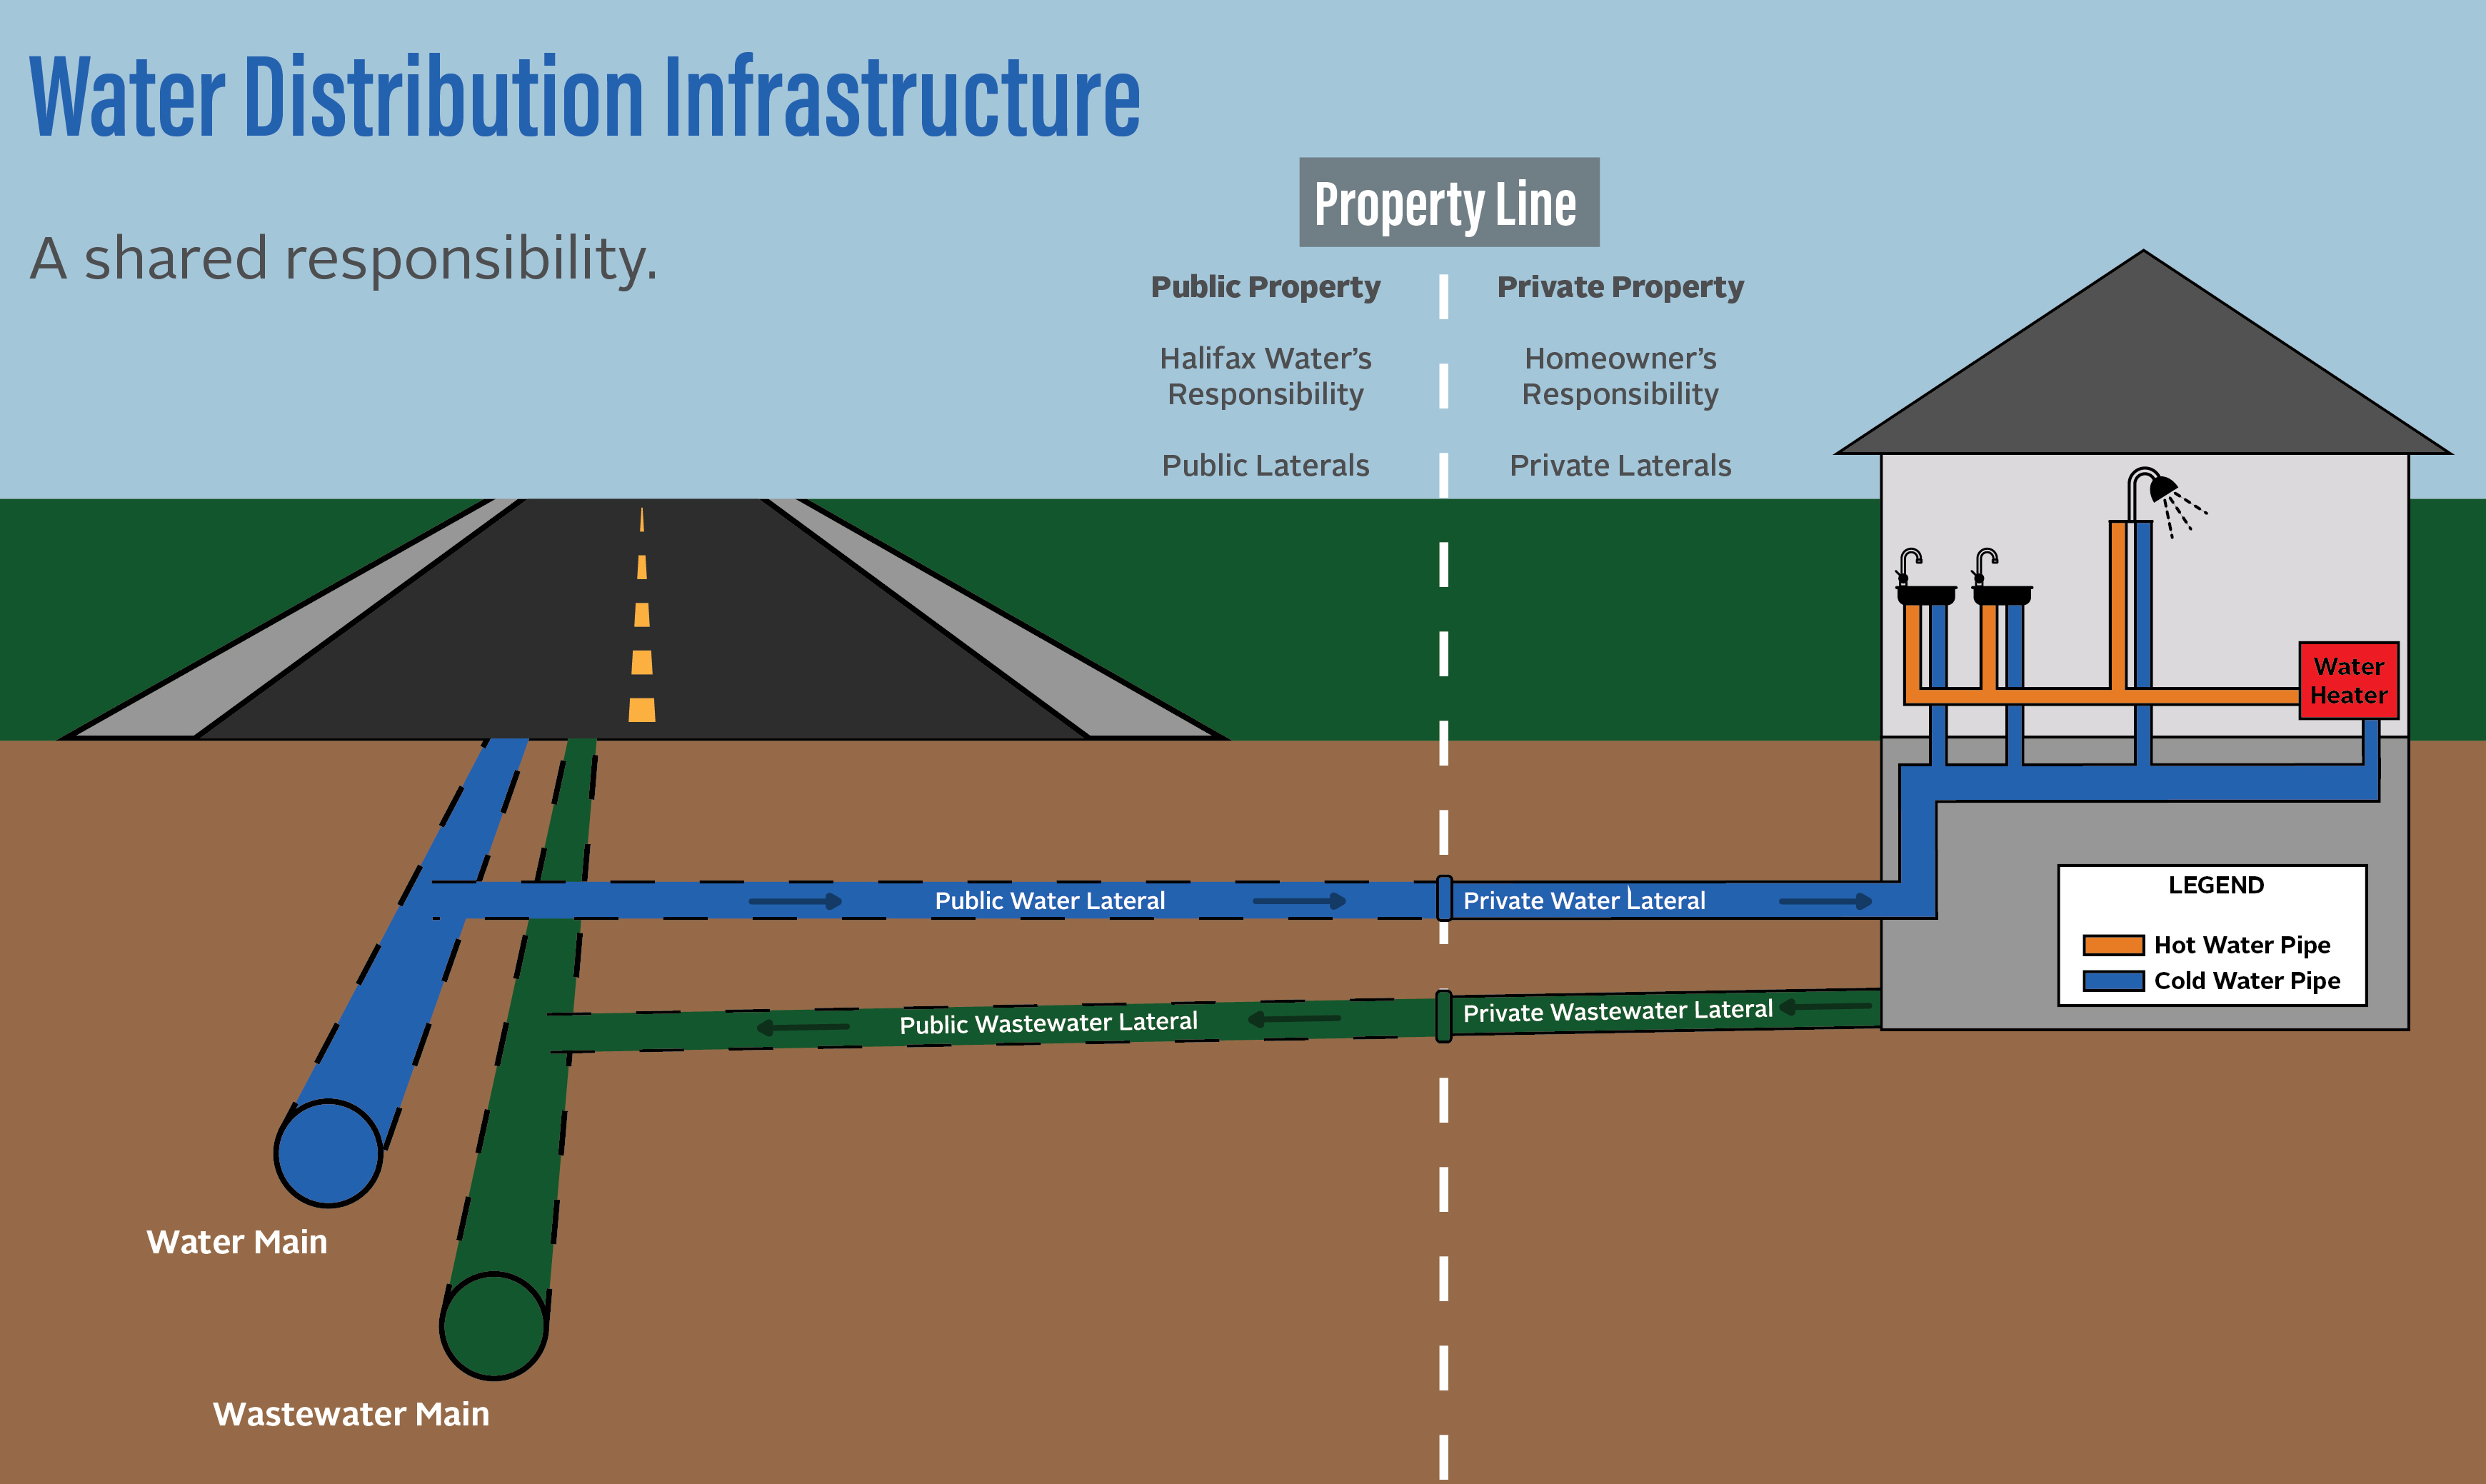 Water Distribution Infrastructure - A Shared Responsibility